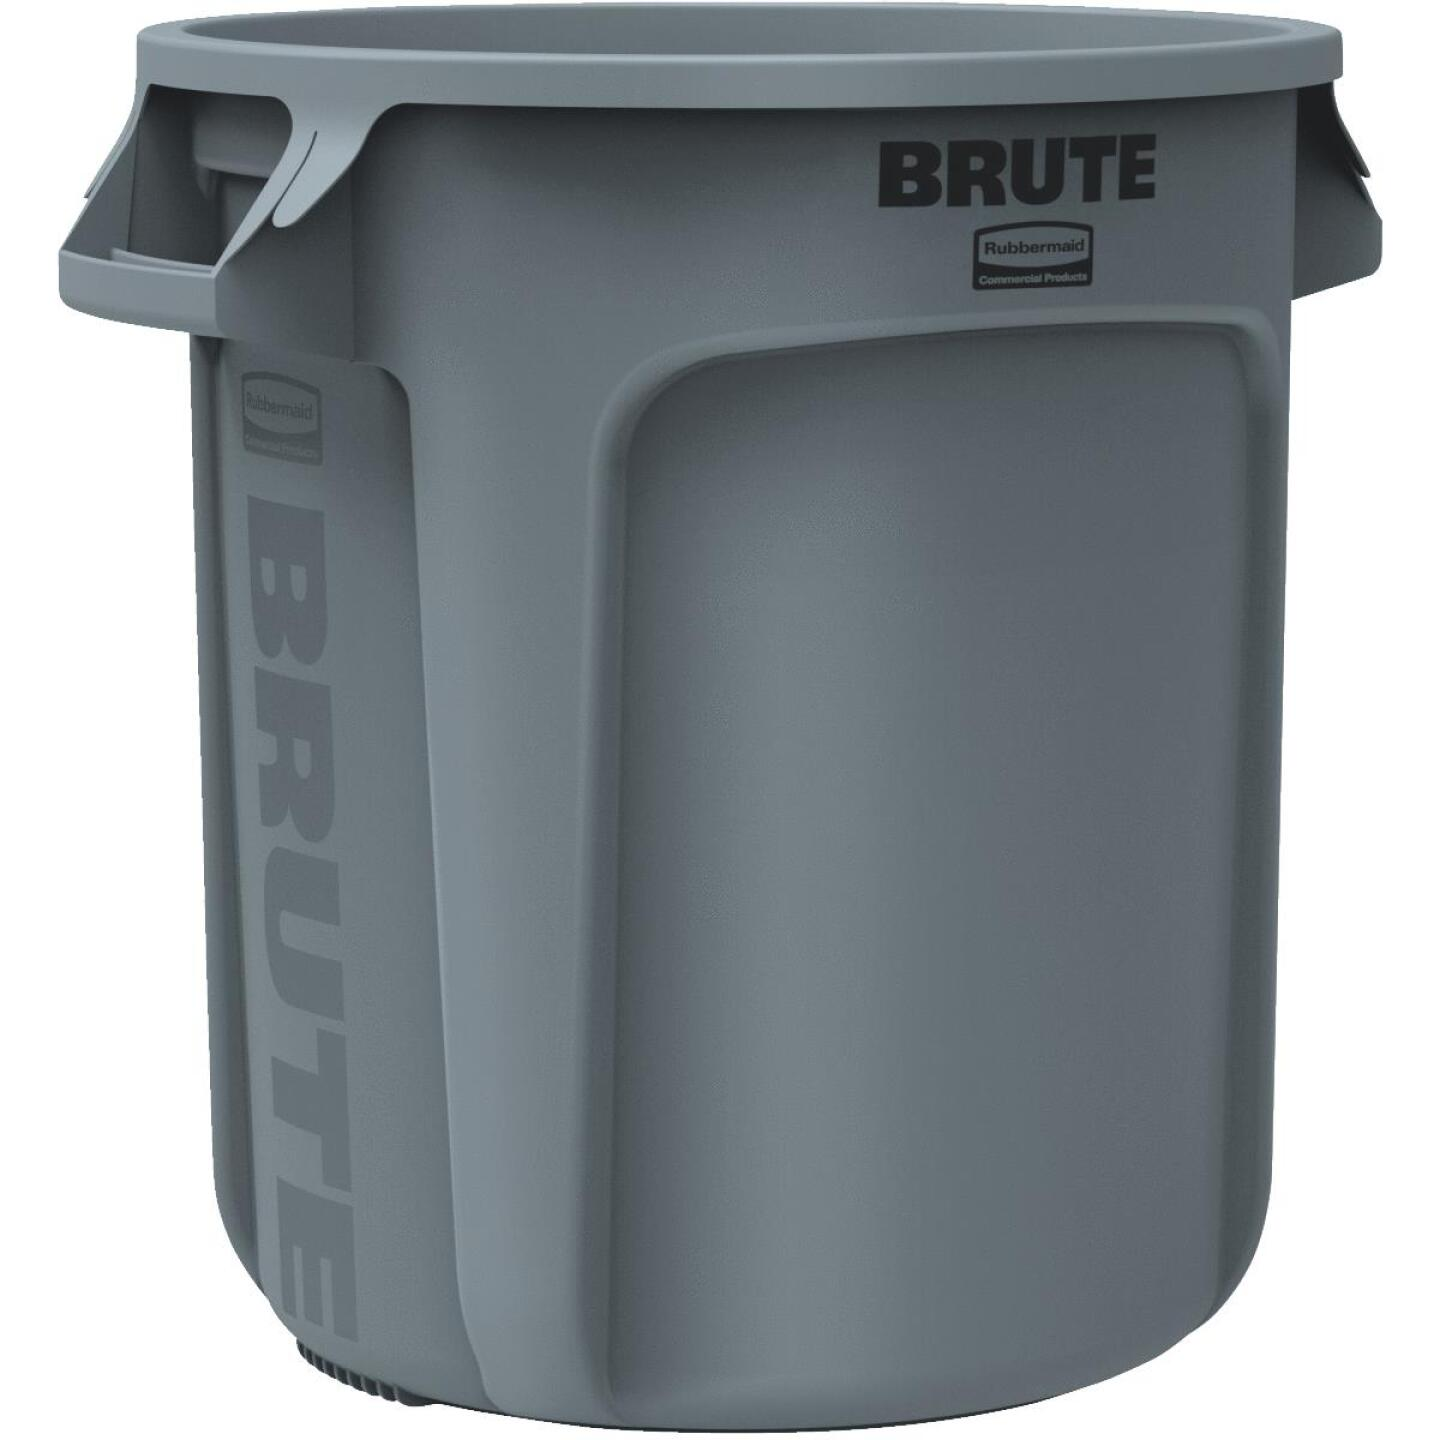 Rubbermaid Commercial Brute 10 Gal. Gray Vented Trash Can Image 1